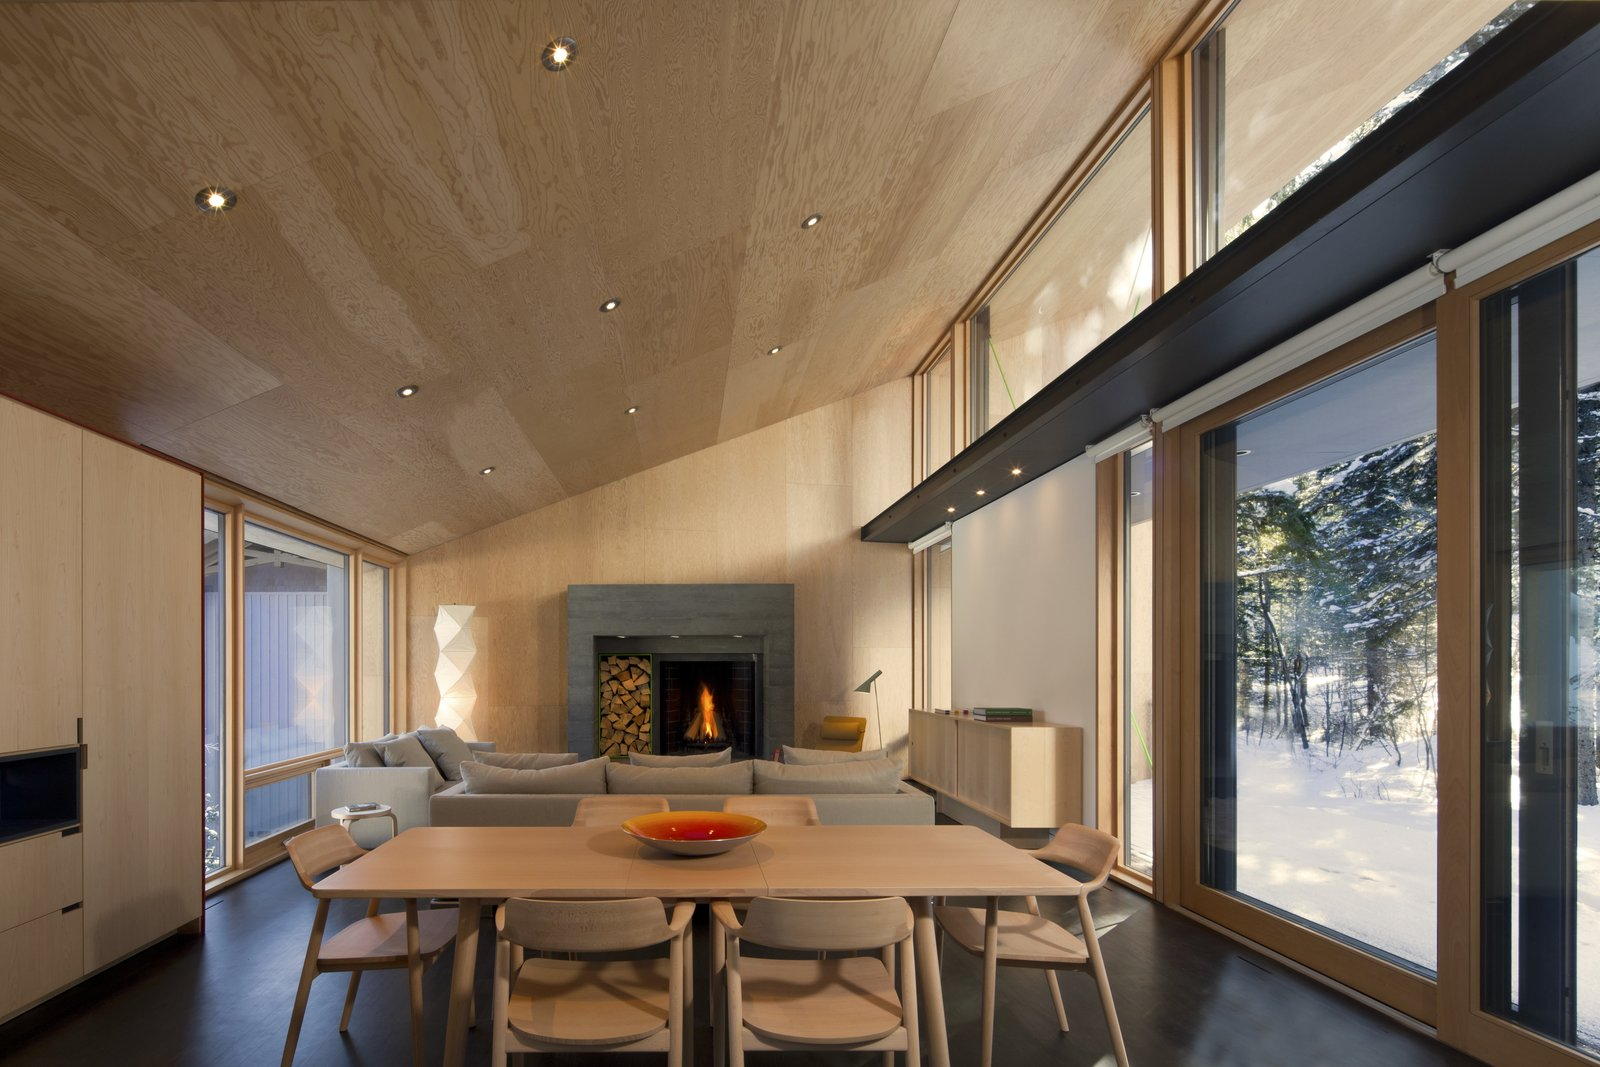 Wood Burning Fireplace, Table, Chair, Living Room, and Recessed Lighting  Cabin ideas from Kicking Horse Residence